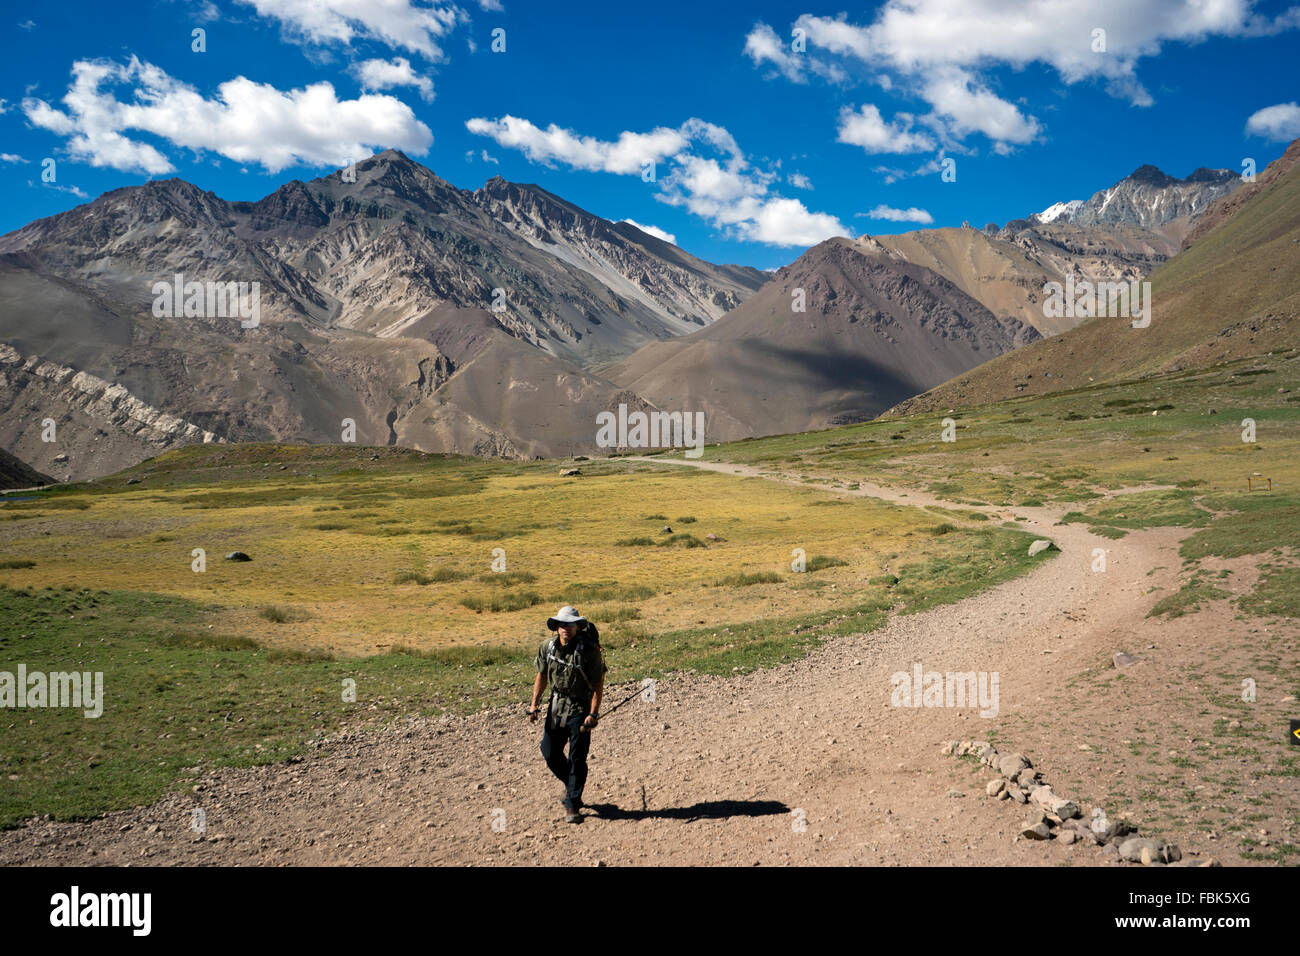 On the way to the summit of Aconcagua, Argentina, Andes. - Stock Image